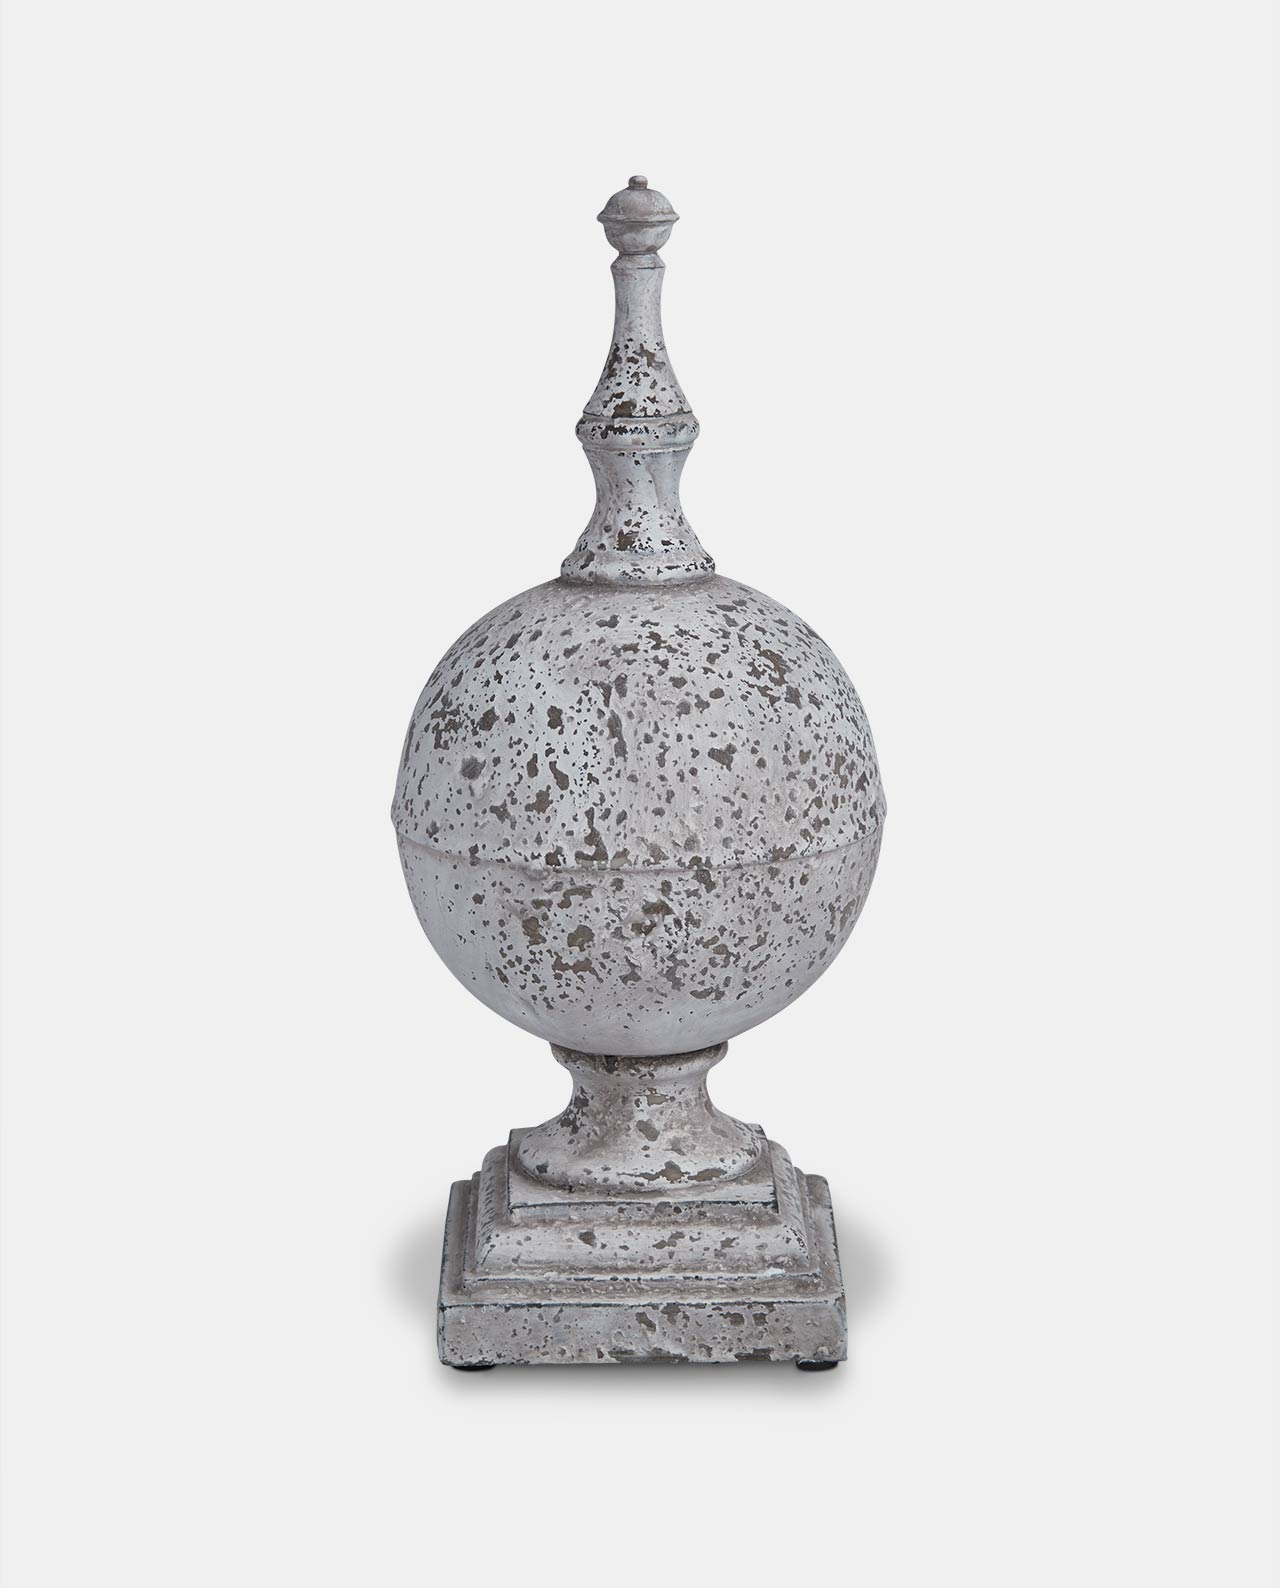 Antique Decorative Finial S